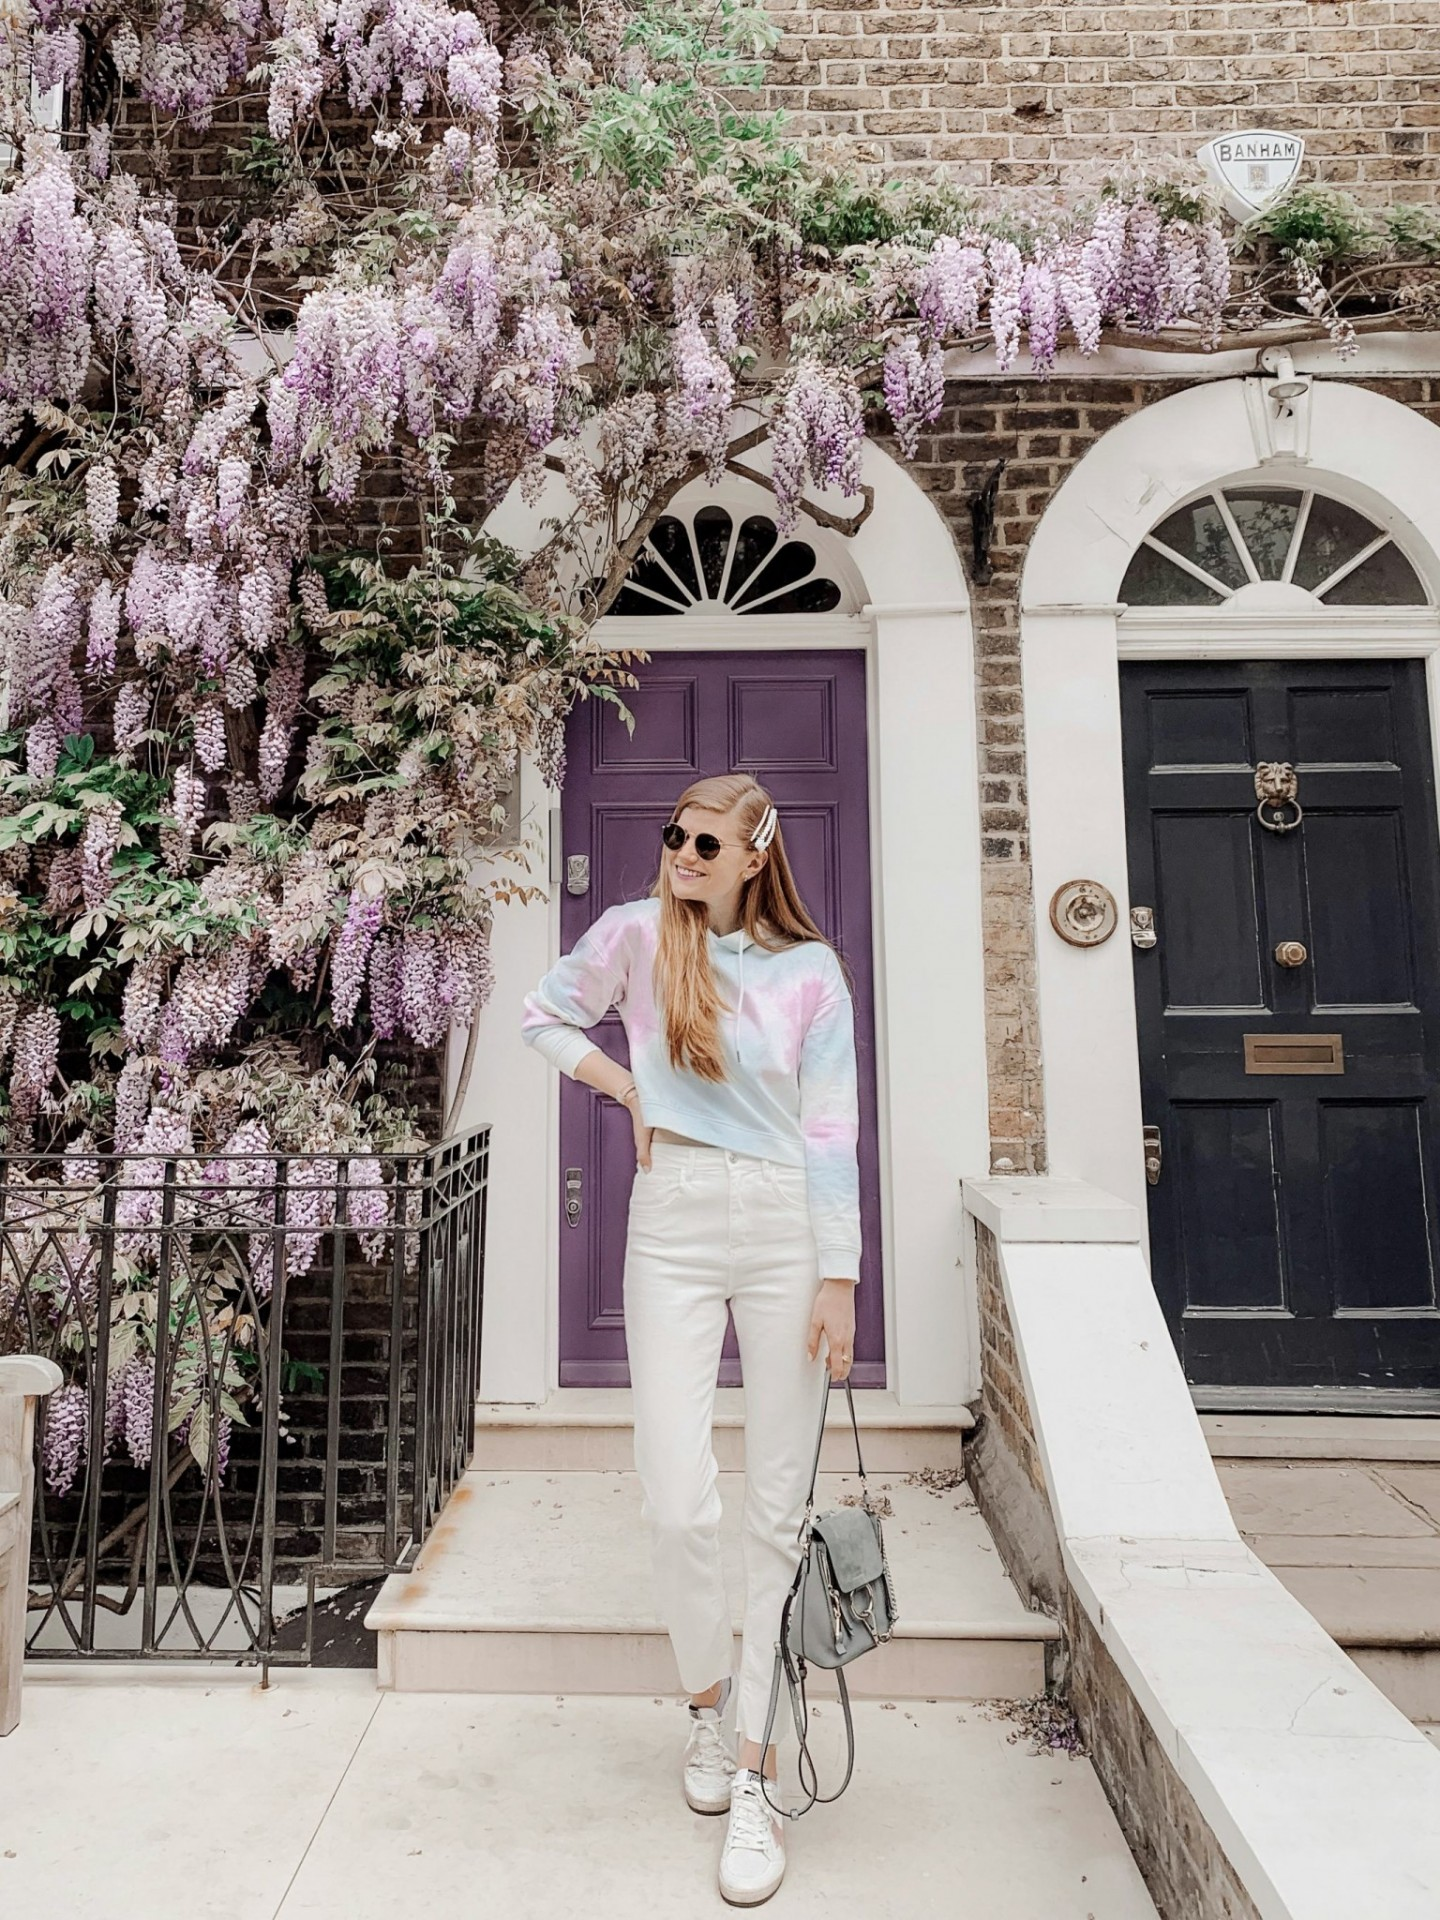 Spring Summer Trends featured by top London fashion blogger Mollie Moore; Image of a woman wearing white jeans, sneakers and a tie-dye hoodie.